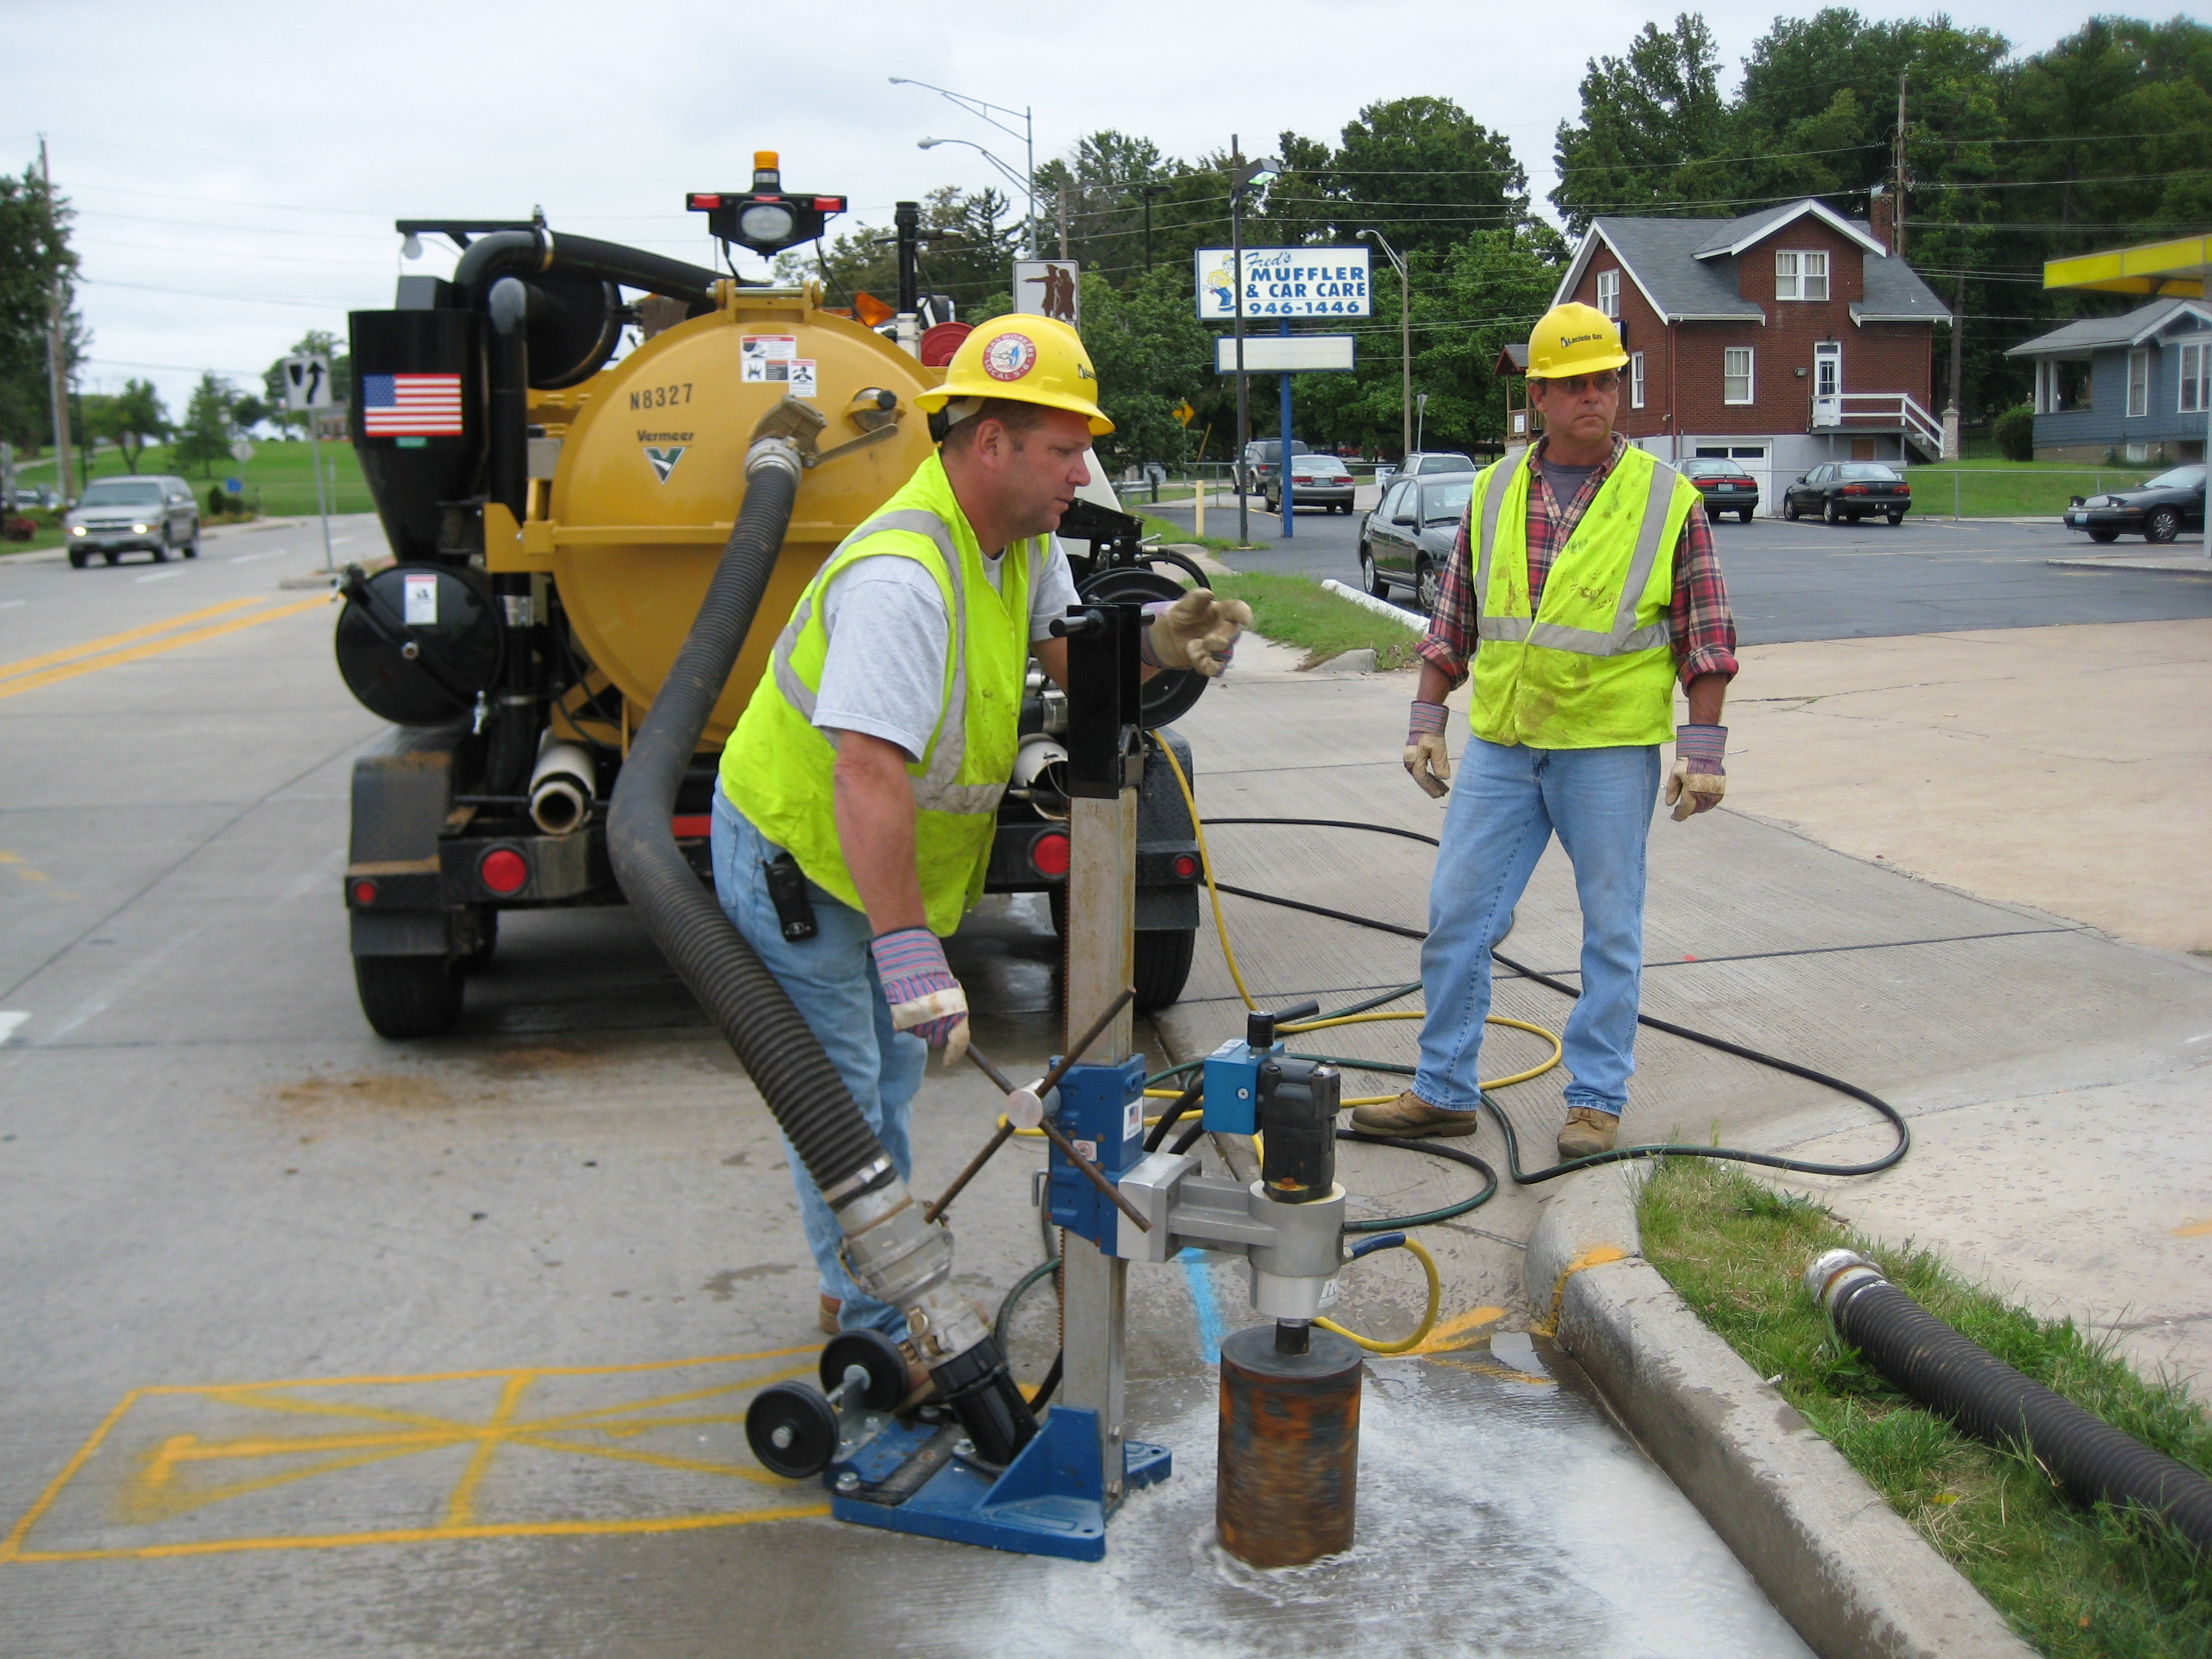 laclede gas number Maintaining Gas Lines In The Gateway City - Underground Construction